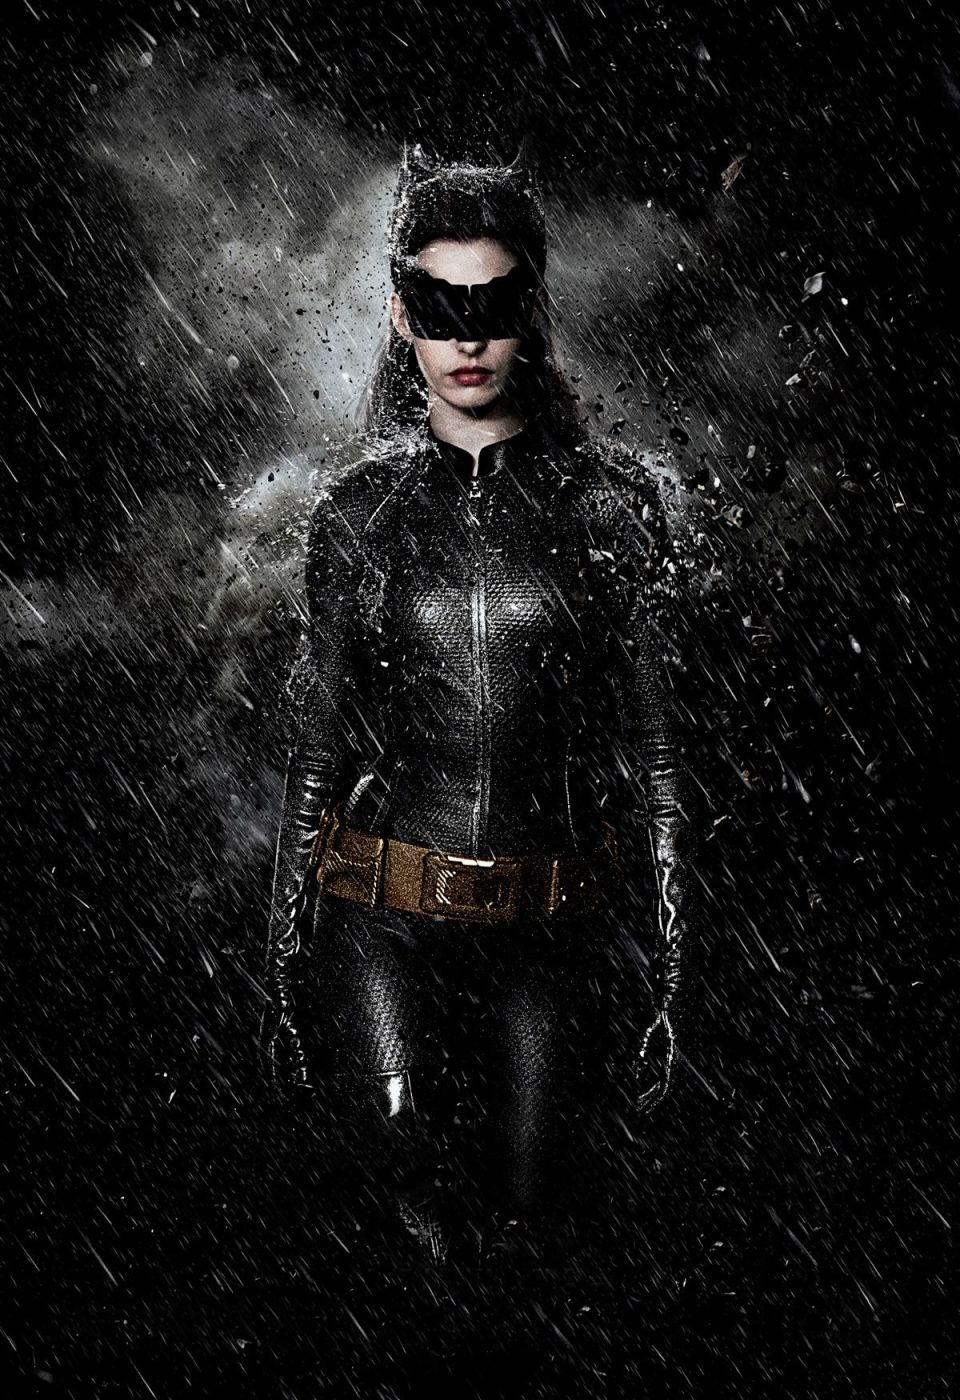 THE DARK KNIGHT RISES Textless Posters and Banners (4)